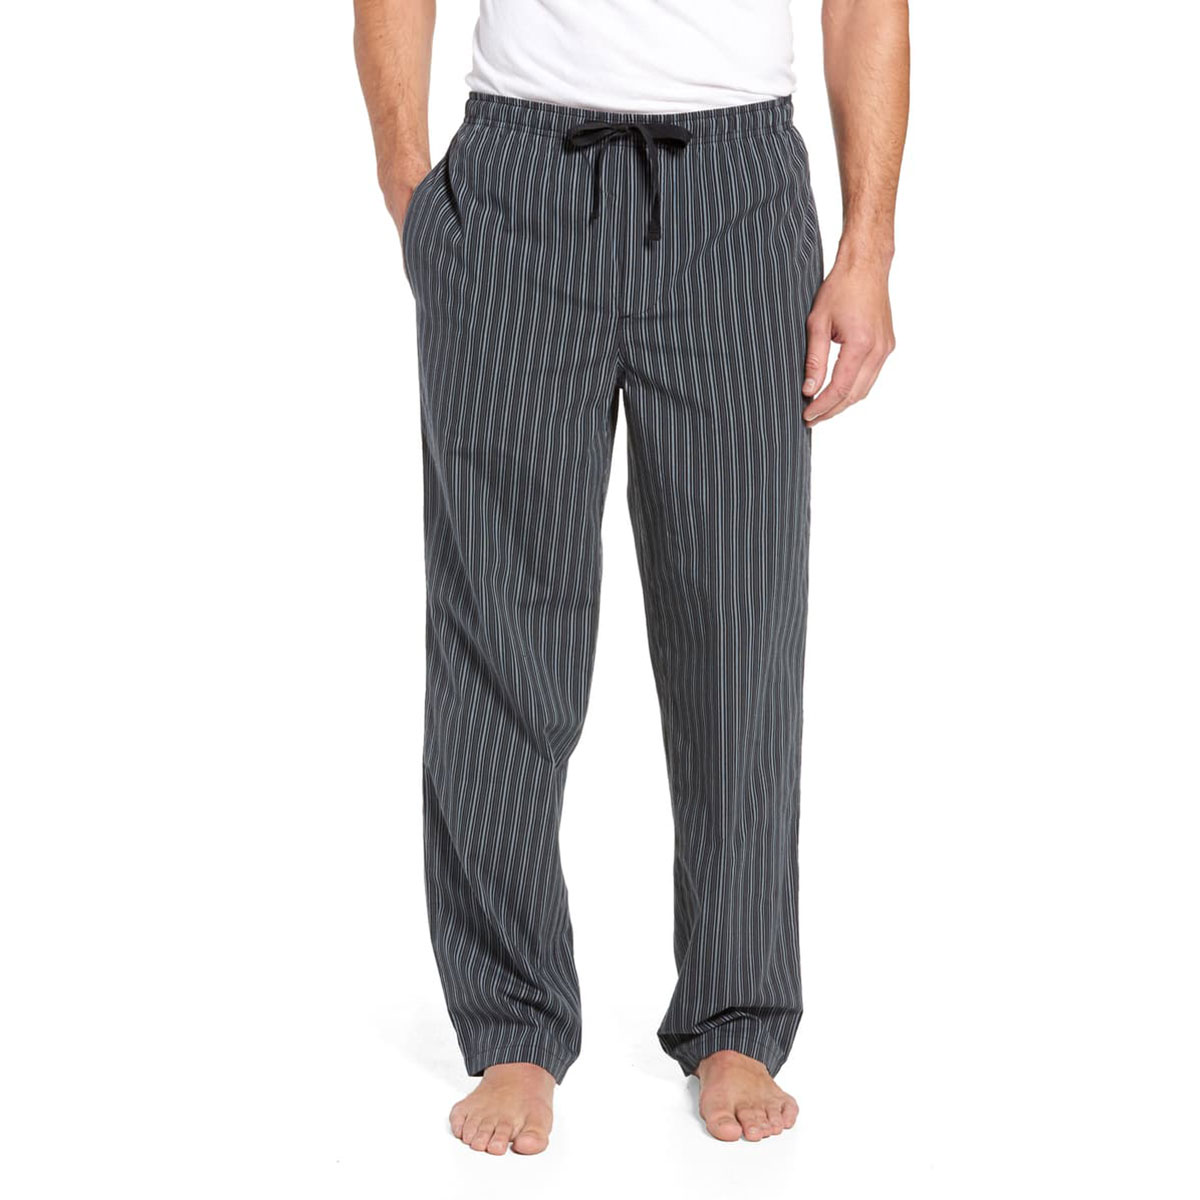 Gifts for Brother: Poplin Pajama Pants at Nordstrom